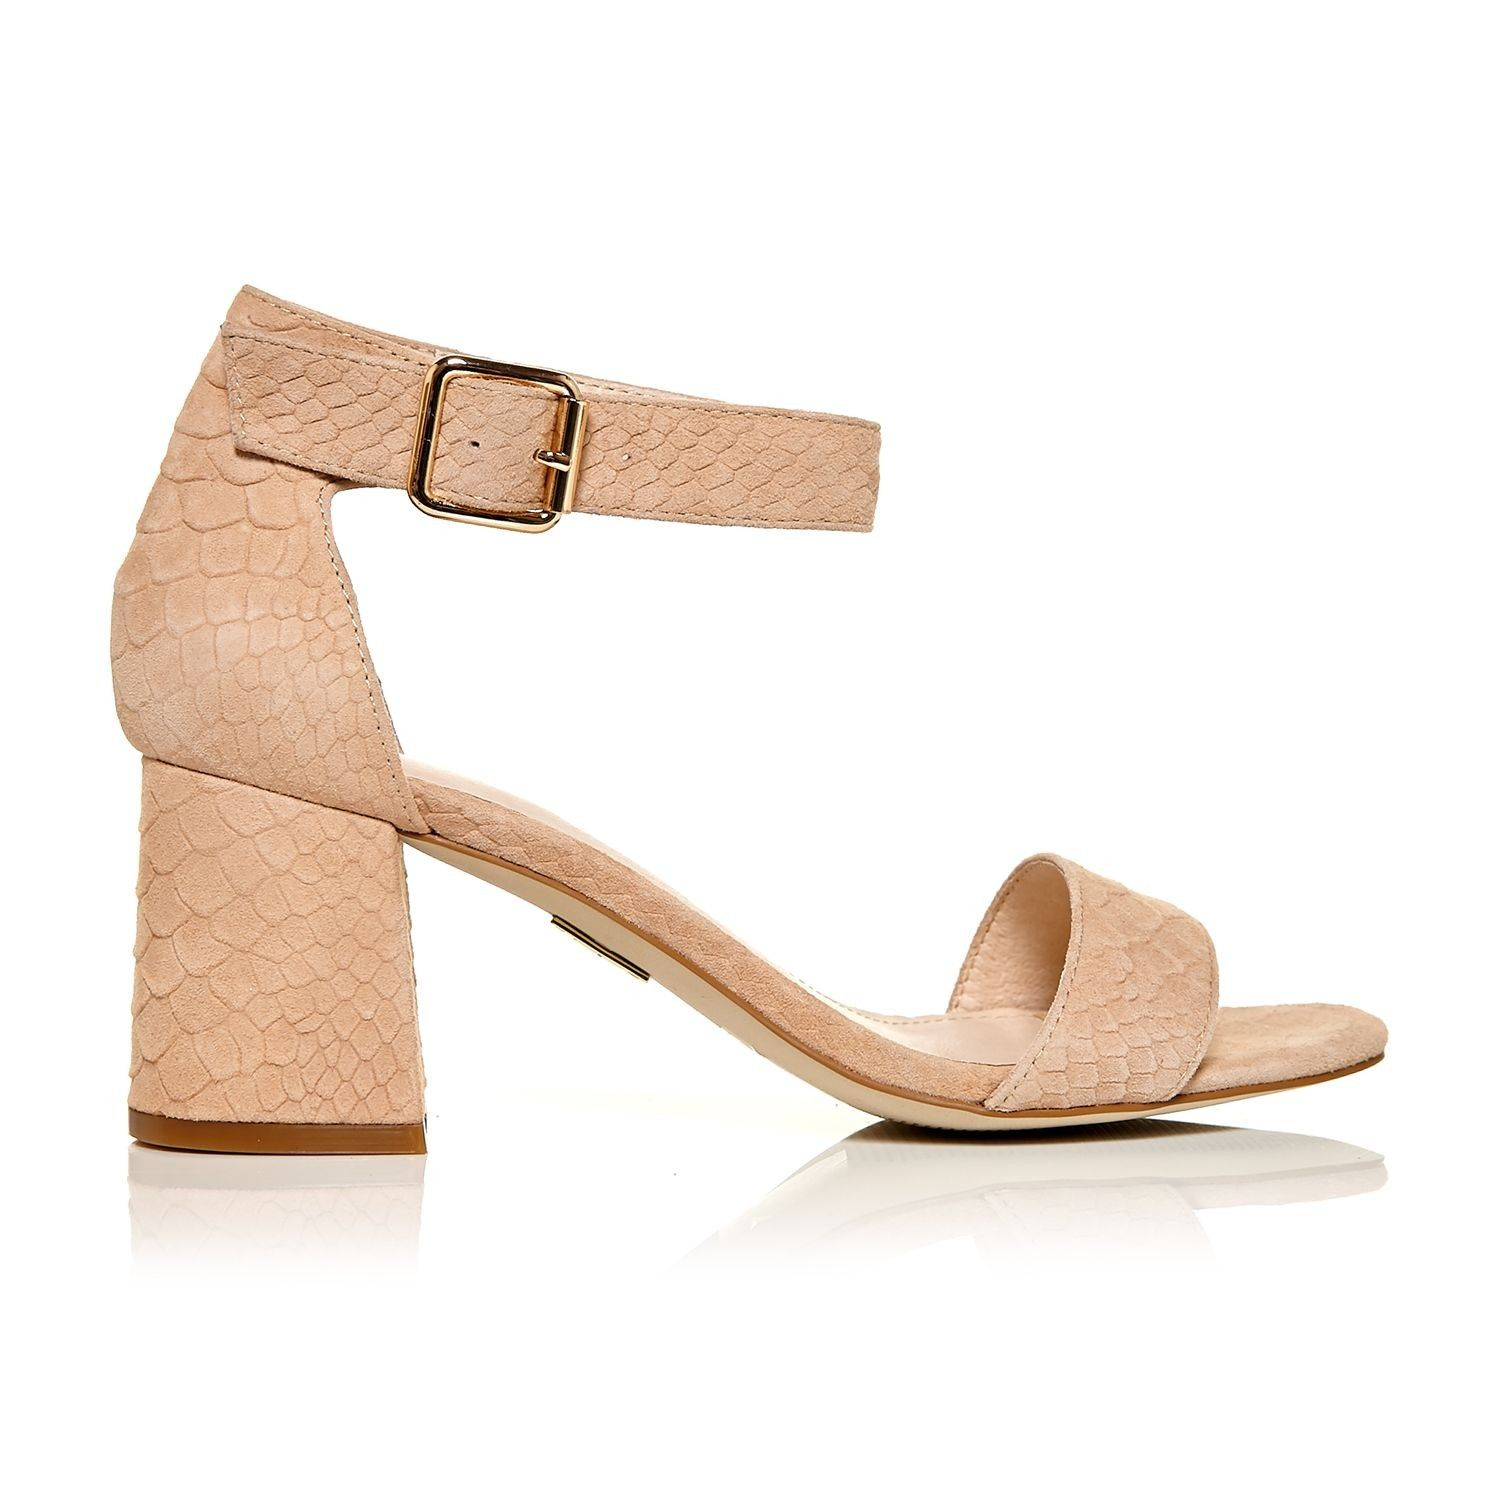 Look Gorgeous In The Summer With Heeled Sandals From Moda Pelle Including Chunky Heels And Stilettos